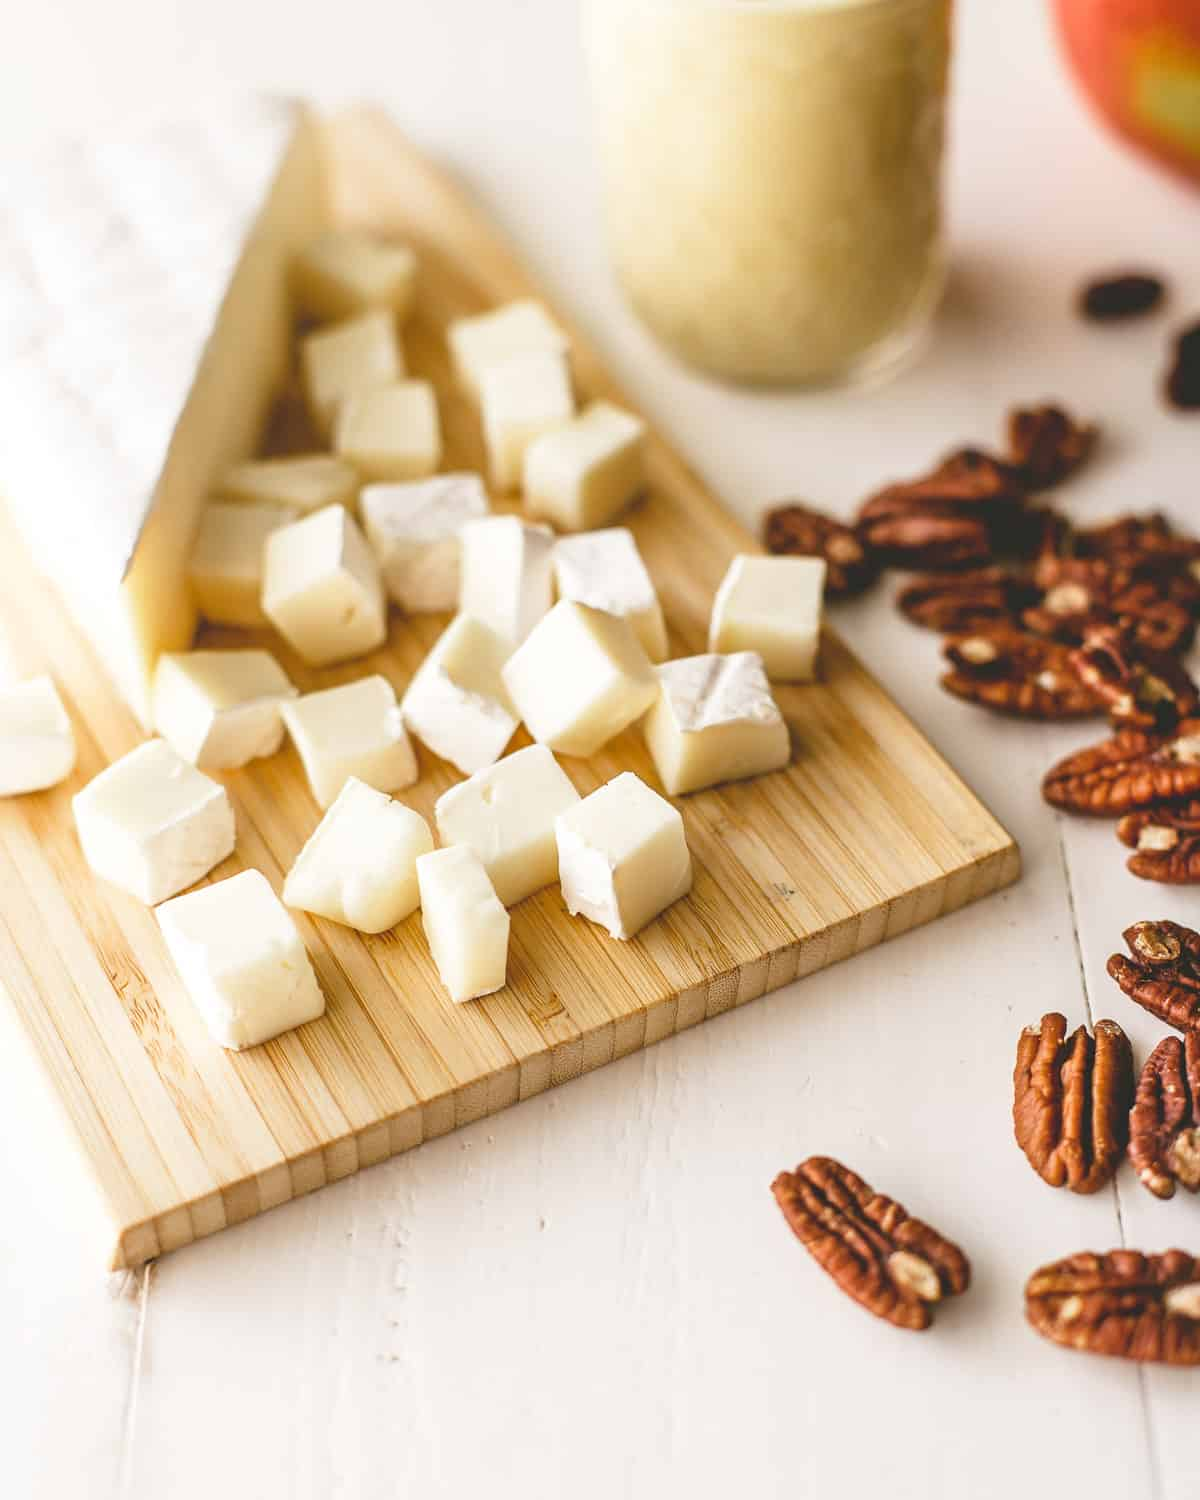 brie and pecans on a white table